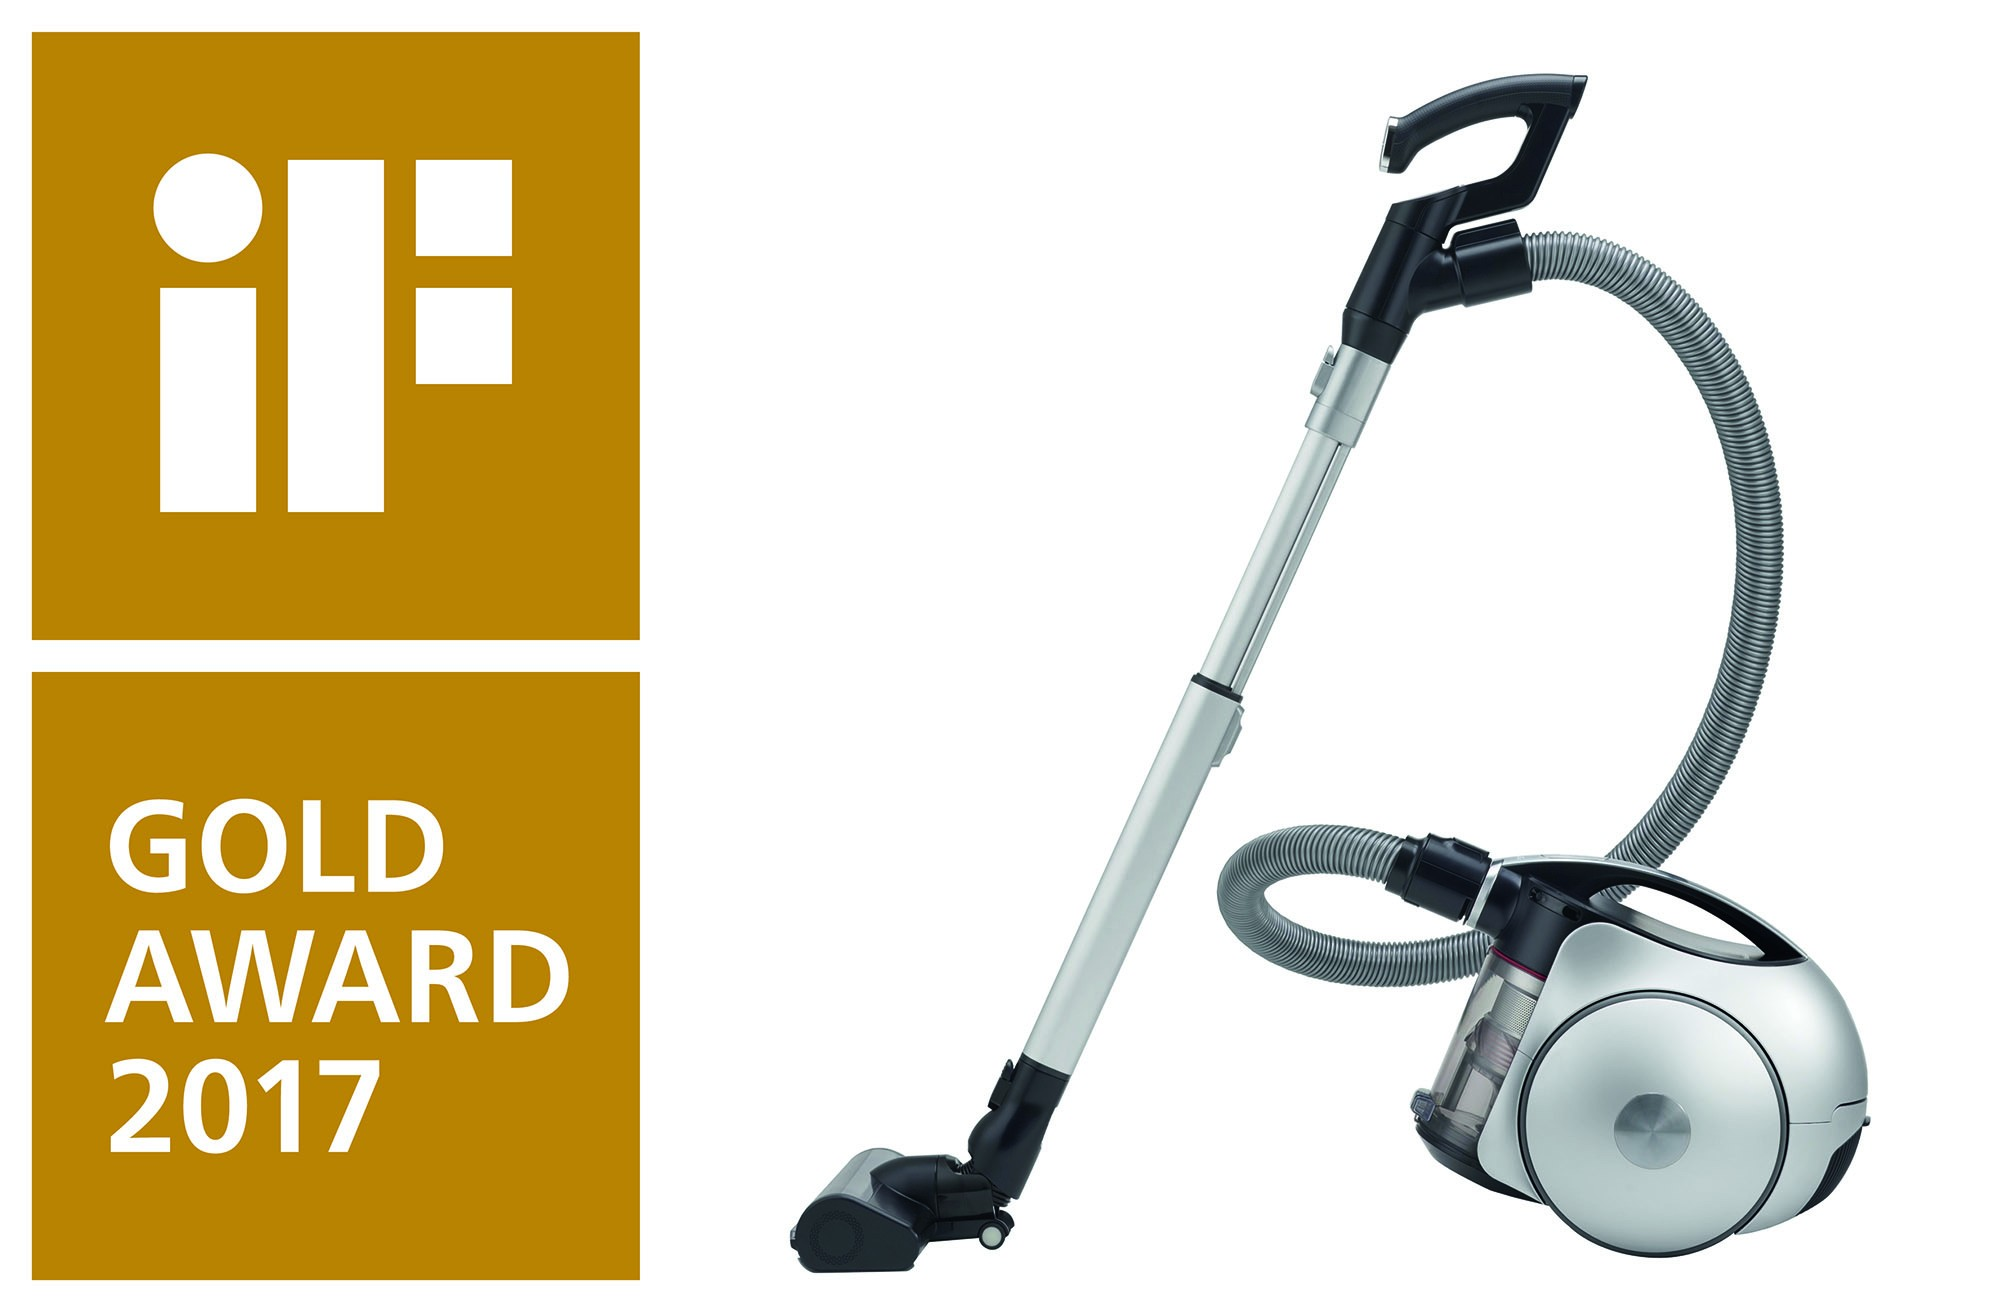 The LG CordZero™ canister vacuum cleaner wins the highly prestigious iF Gold Award.